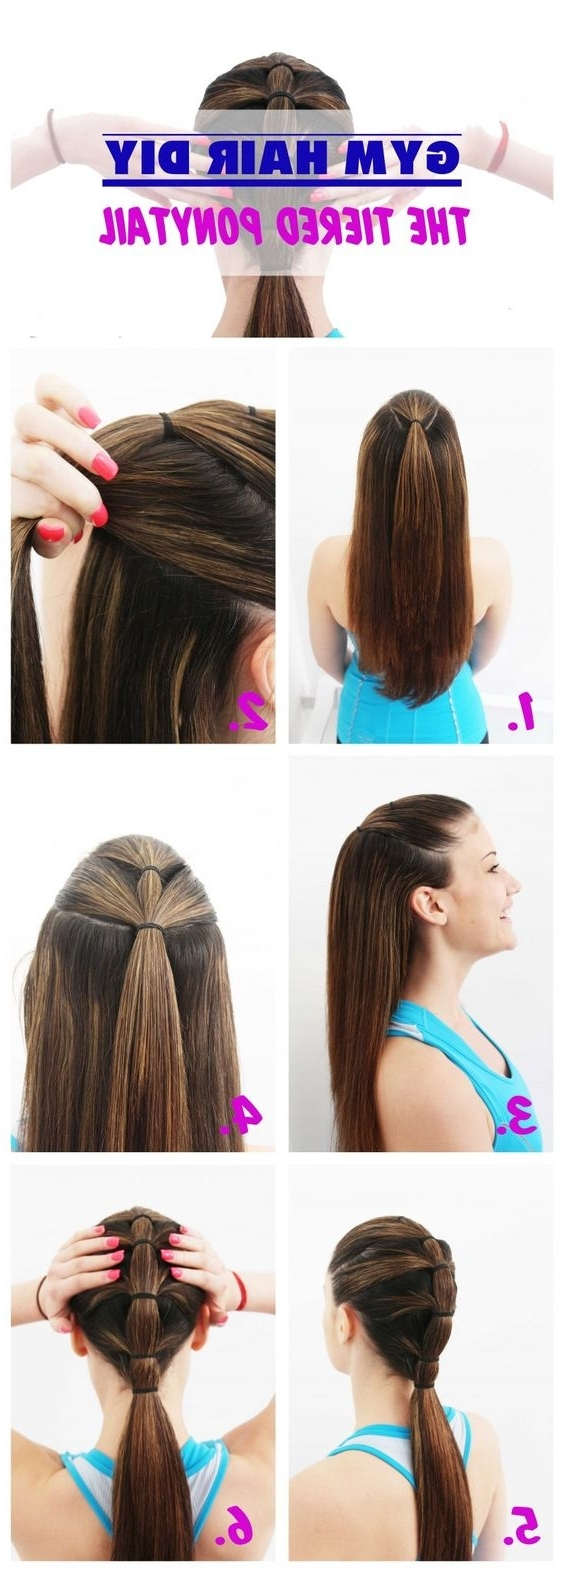 7 Easy Ways To Do Your Hair For Sports Regarding Sporty Updo Hairstyles For Short Hair (Gallery 11 of 15)